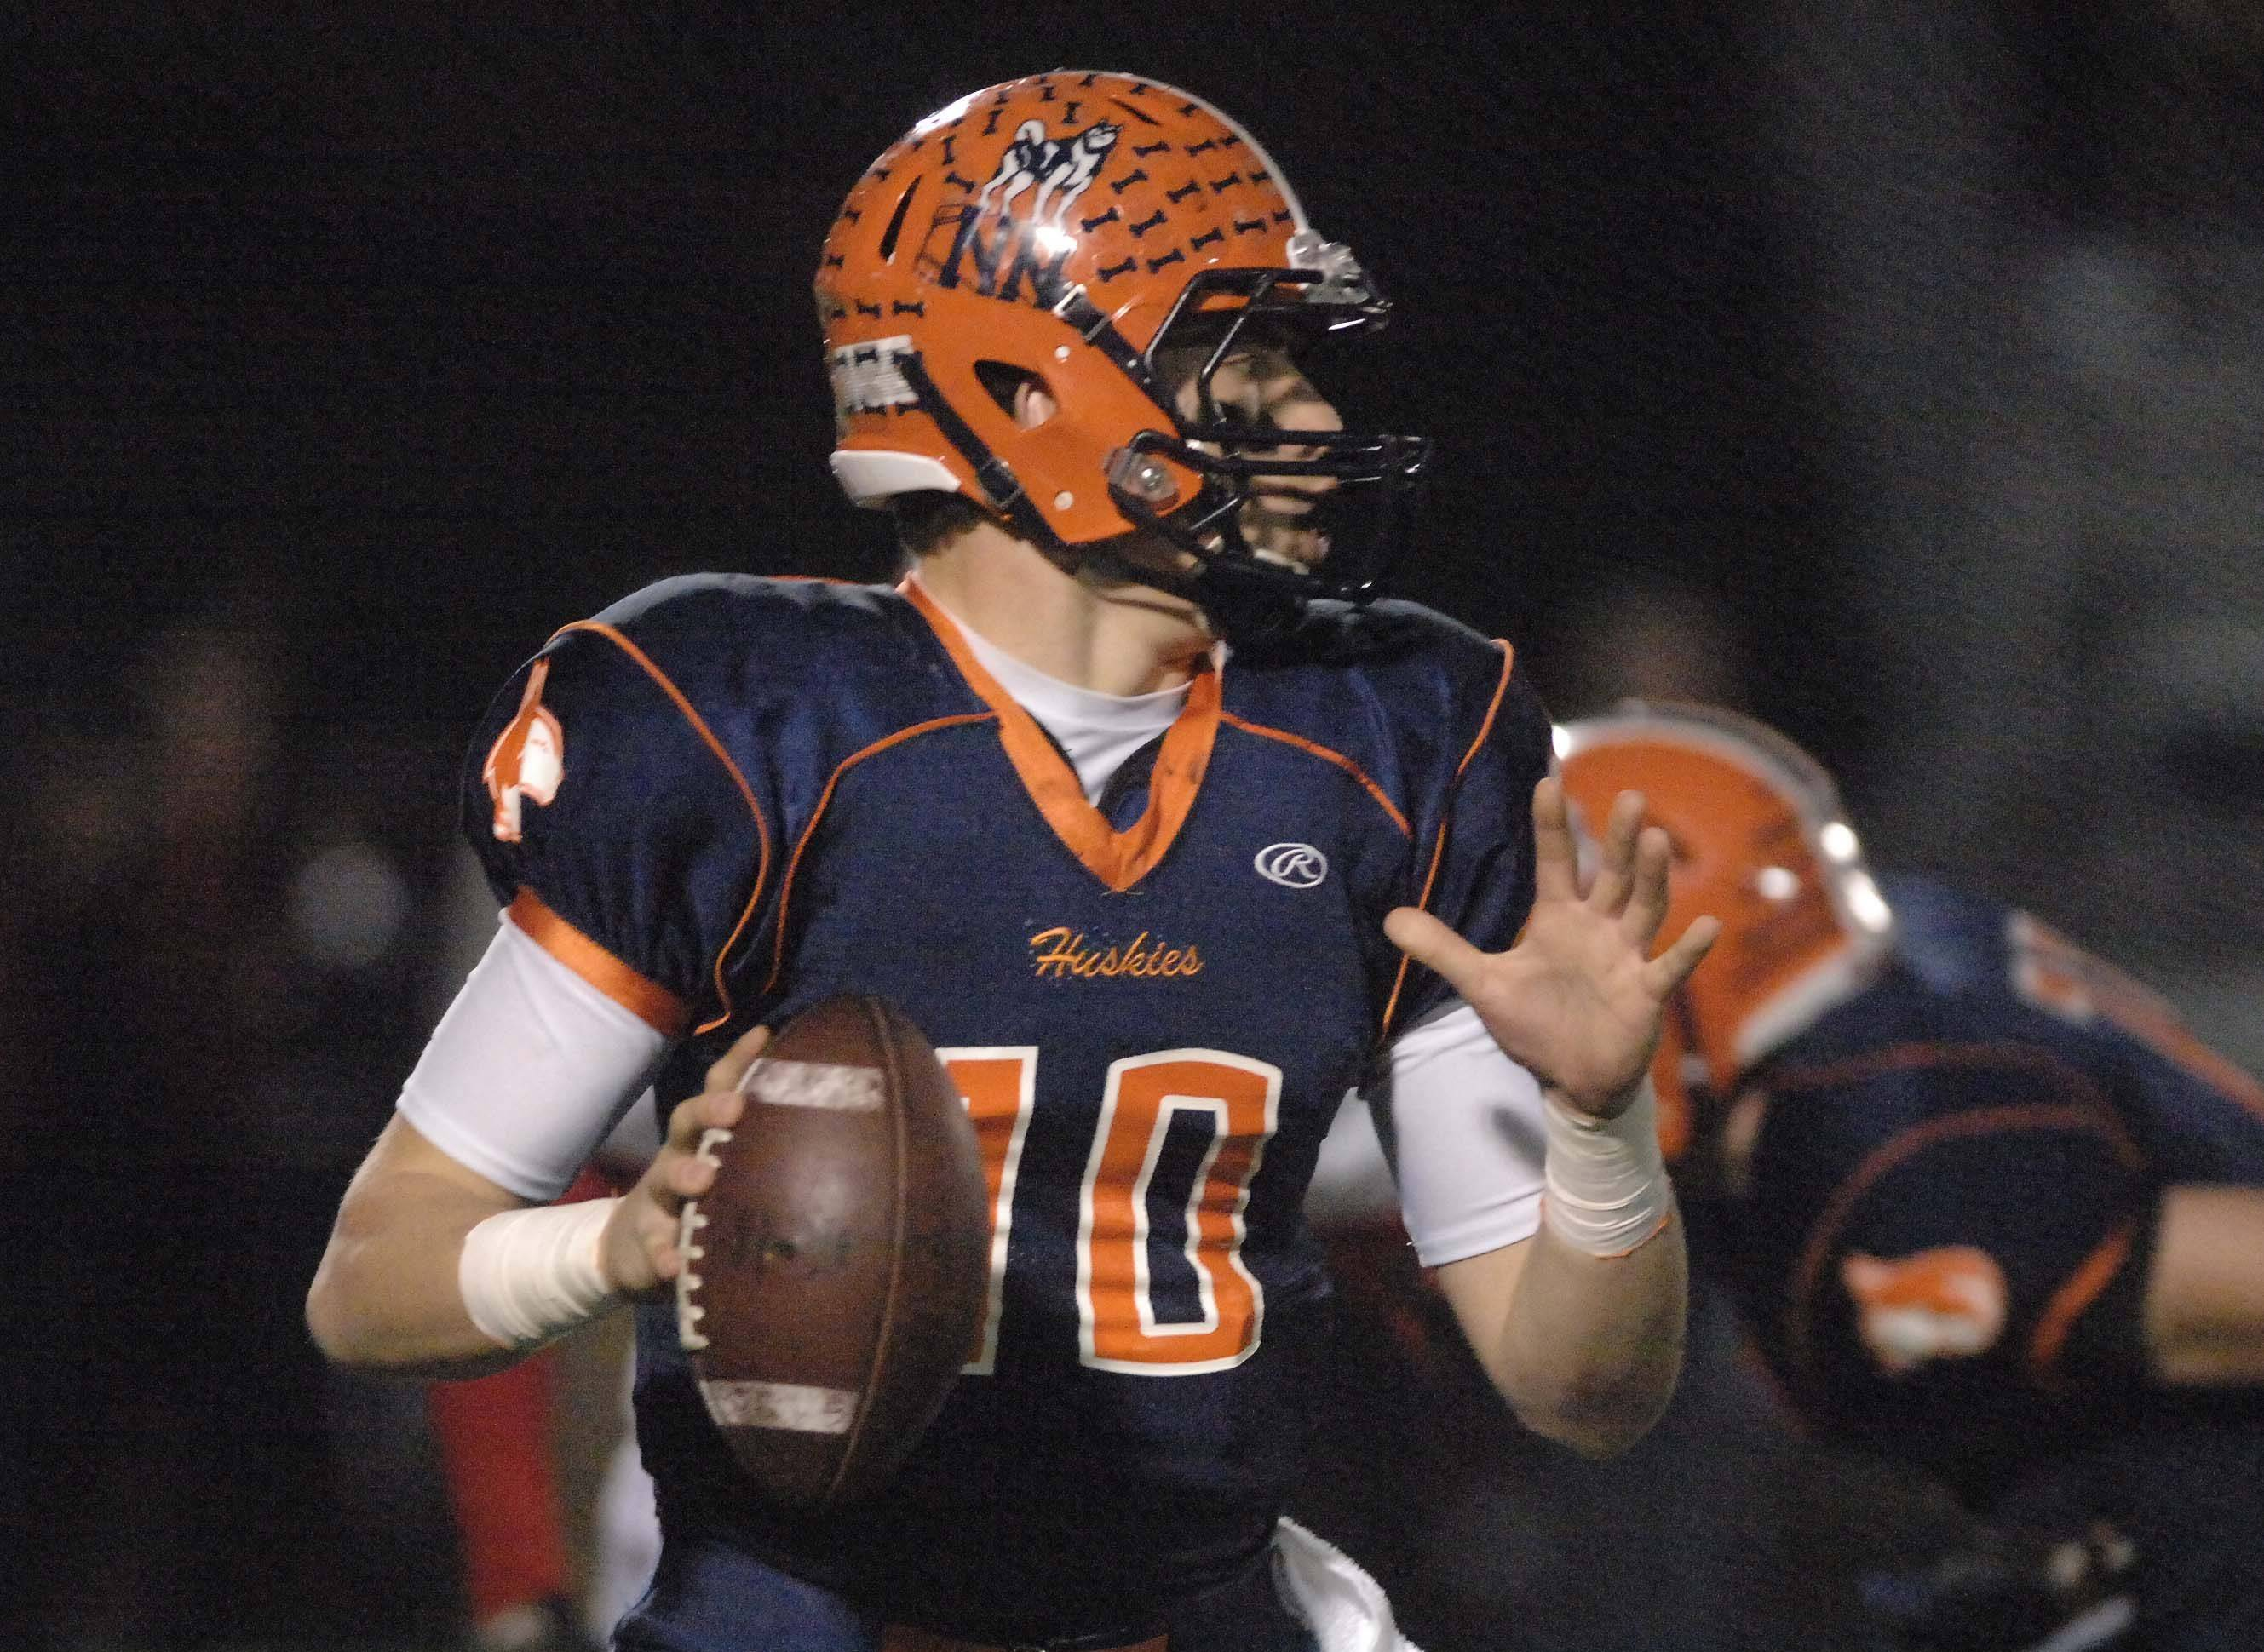 Matt Lacosse of Naperville North looks to pass.